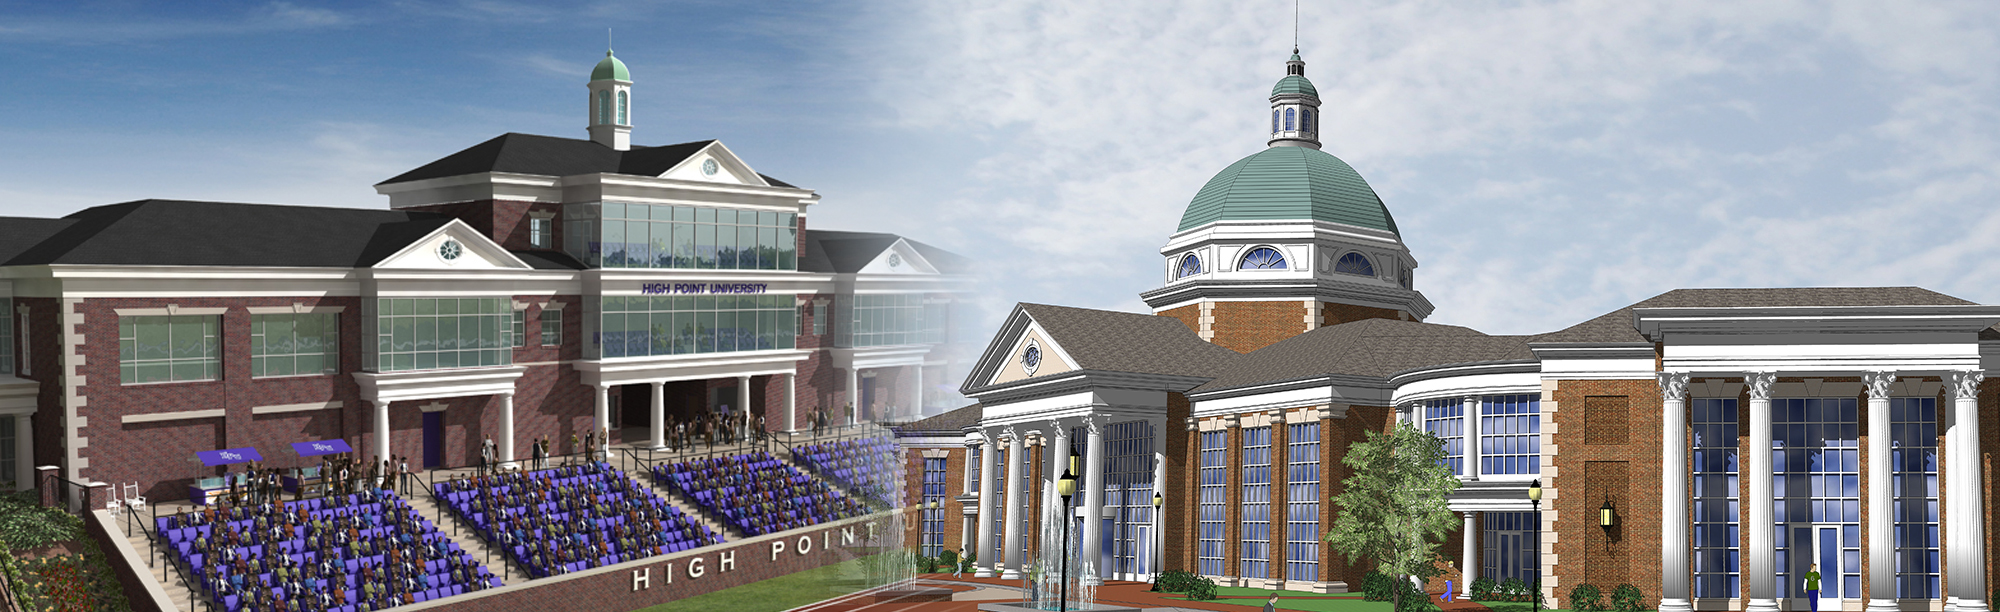 High Point University High Point Nc